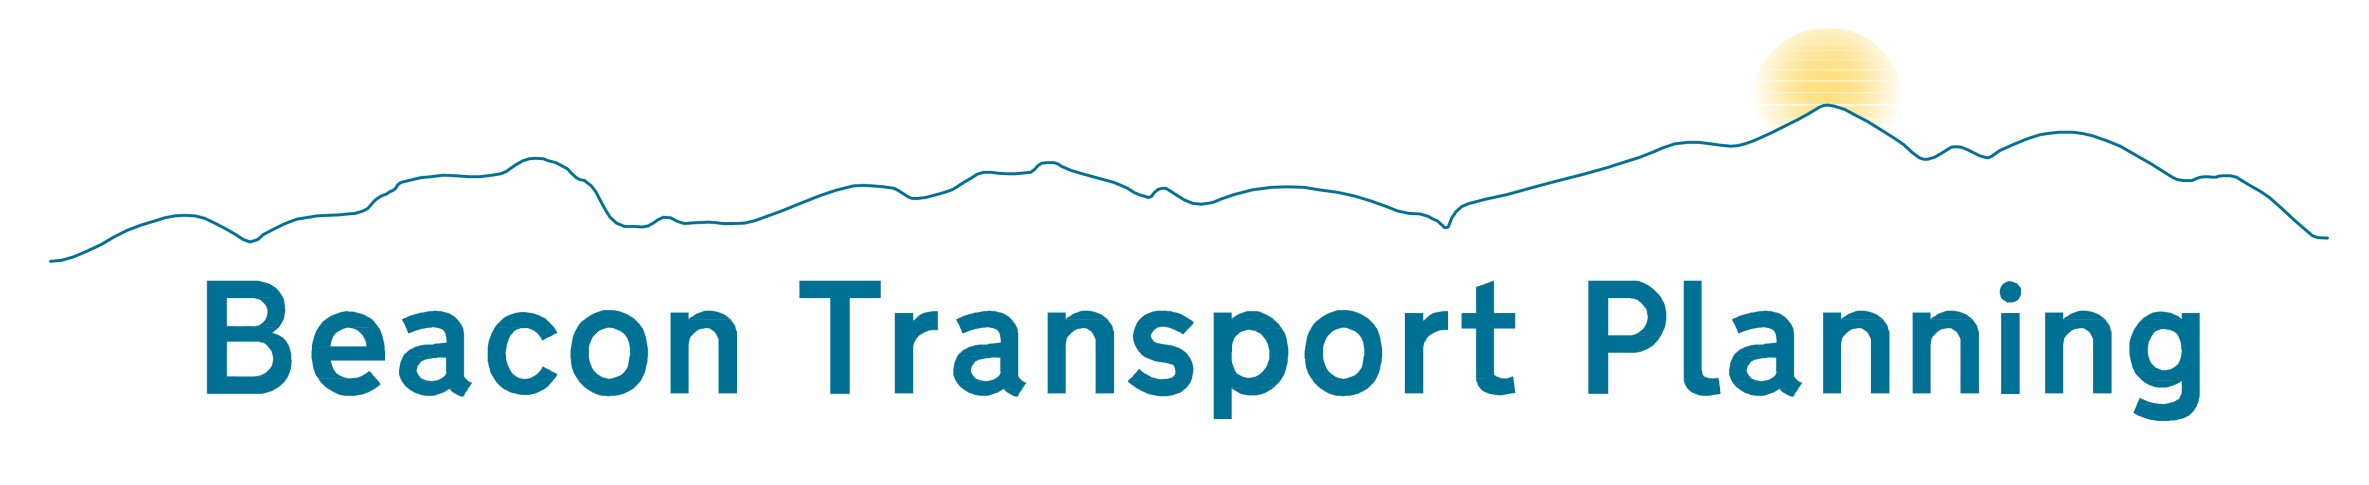 Beacon Transport Planning